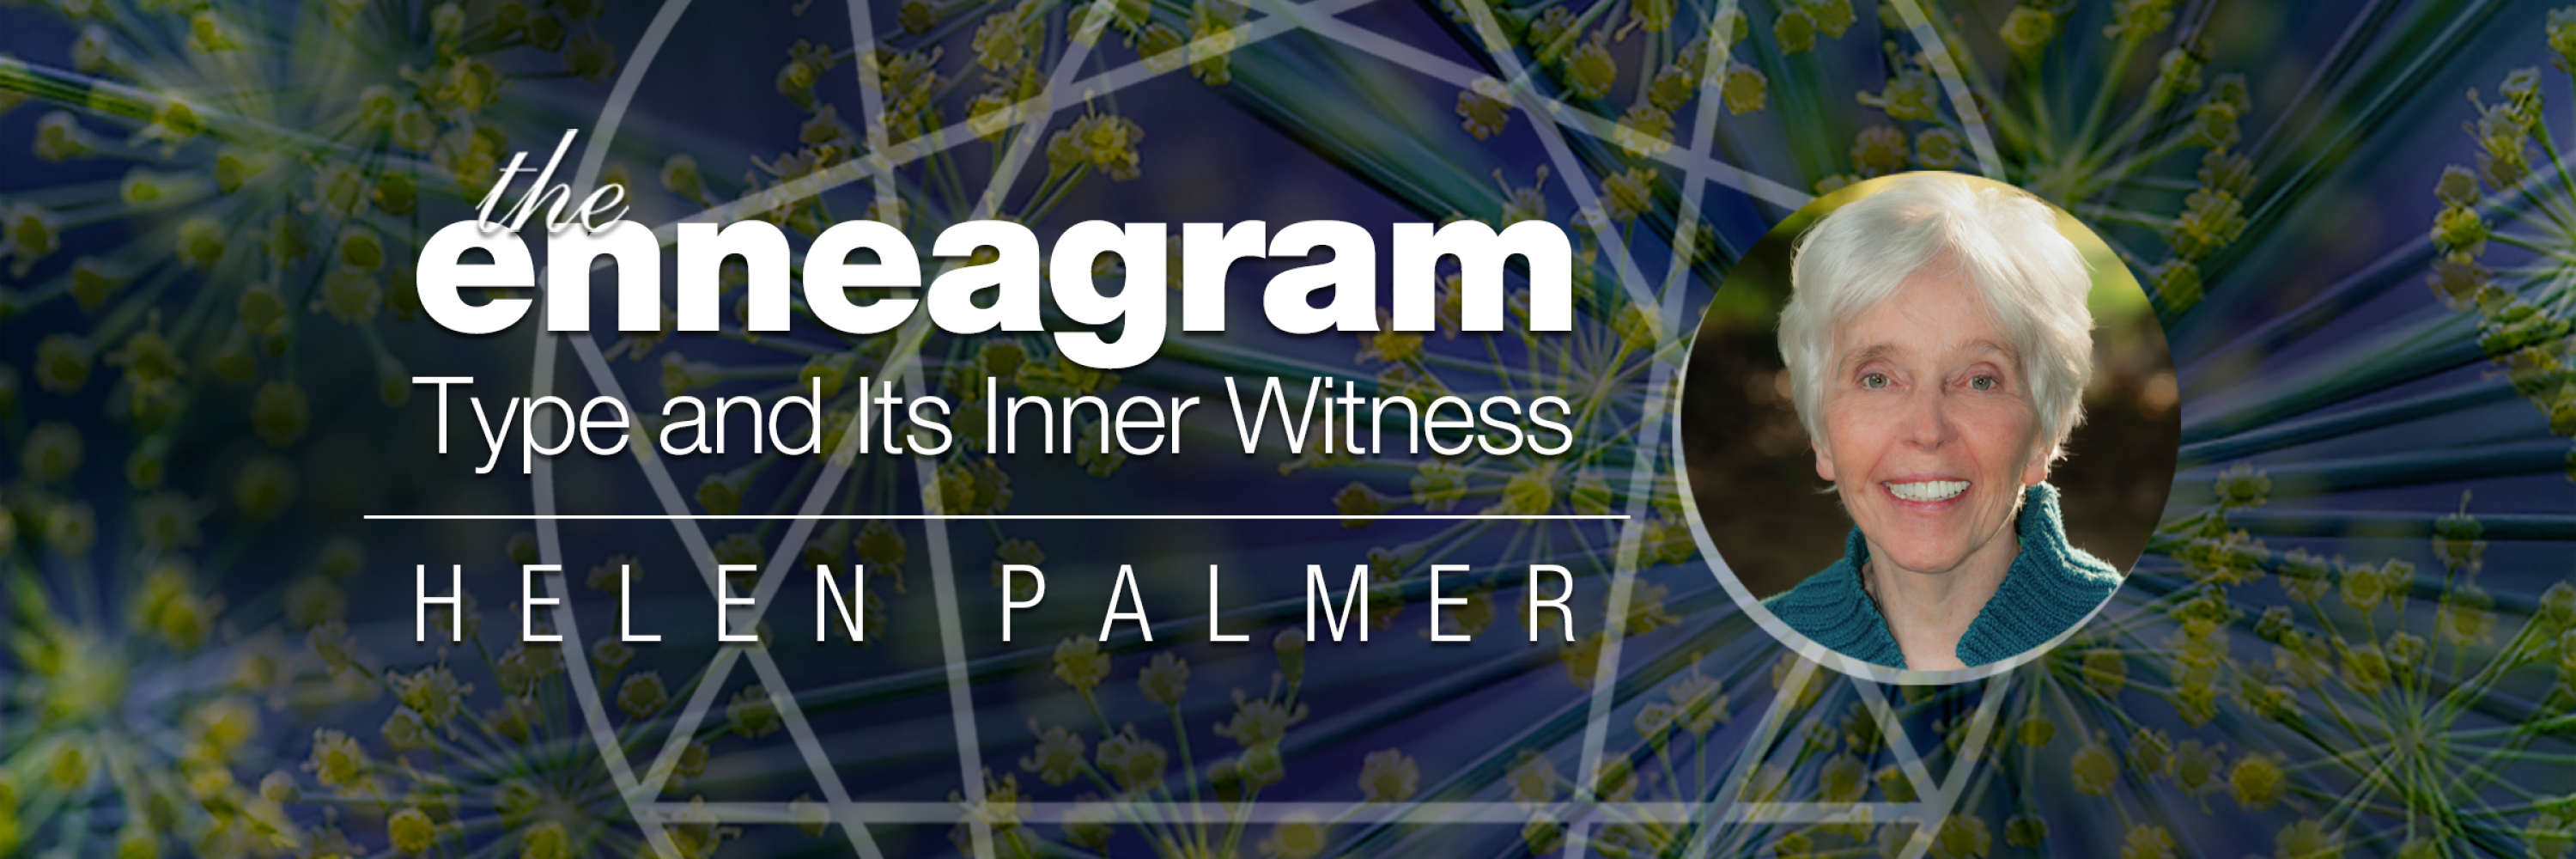 The Enneagram: Type and Inner Witness